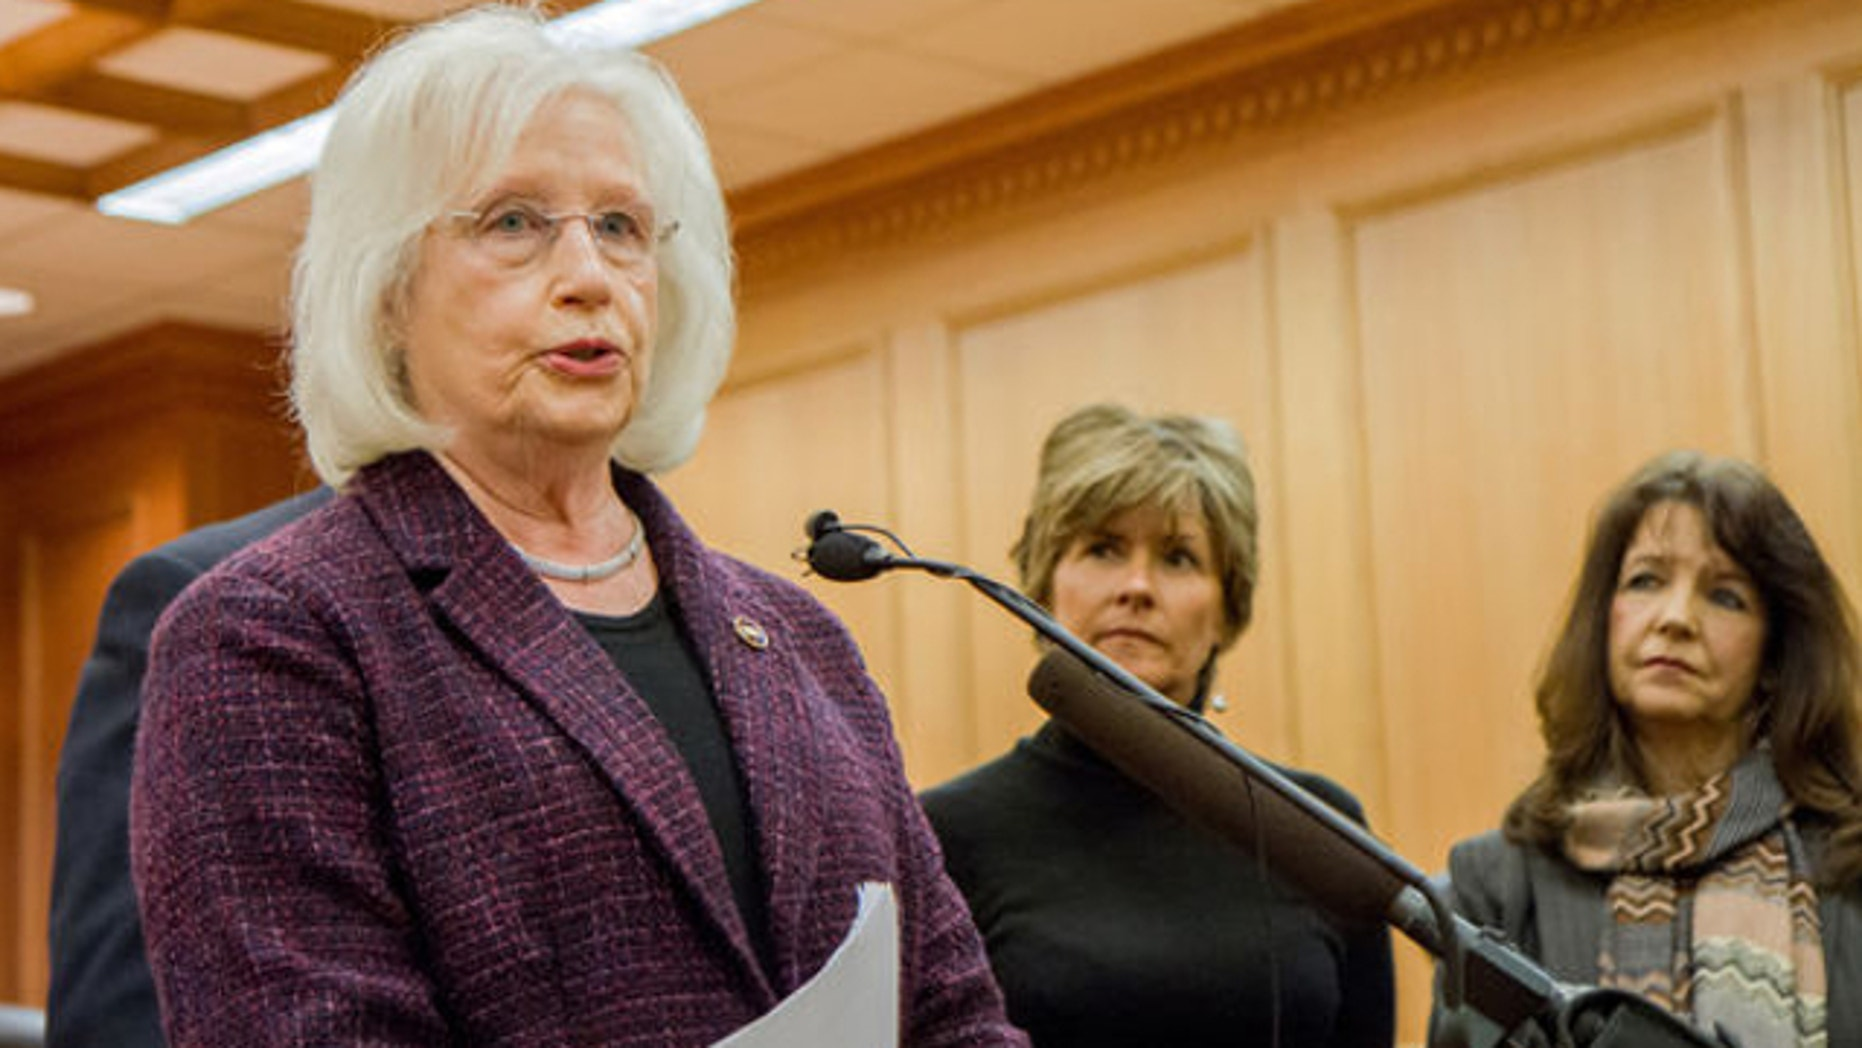 Jan. 15, 2014: Republican Sen. Mae Beavers of Mt. Juliet, left, speaks at a press conference in Nashville, Tenn., about her bill seeking to ban state participation in the federal health care law. To her right are state Republican Reps.Terri Lynn Weaver of Lancaster and Sheila Butt of Columbia.